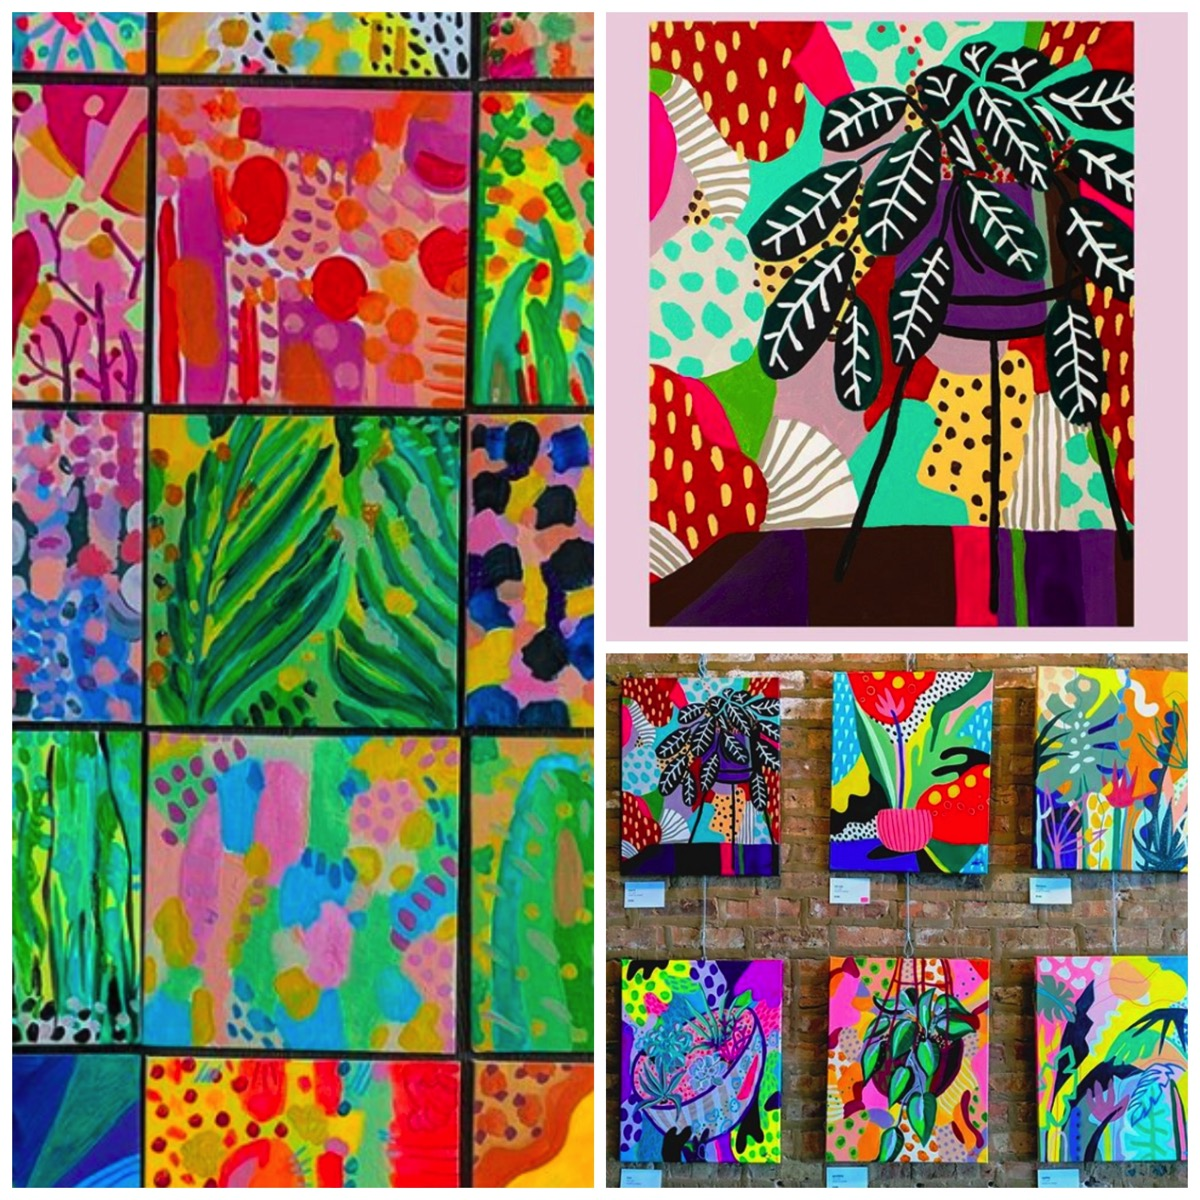 Colorful tropical boho paintings and prints ponno pozz